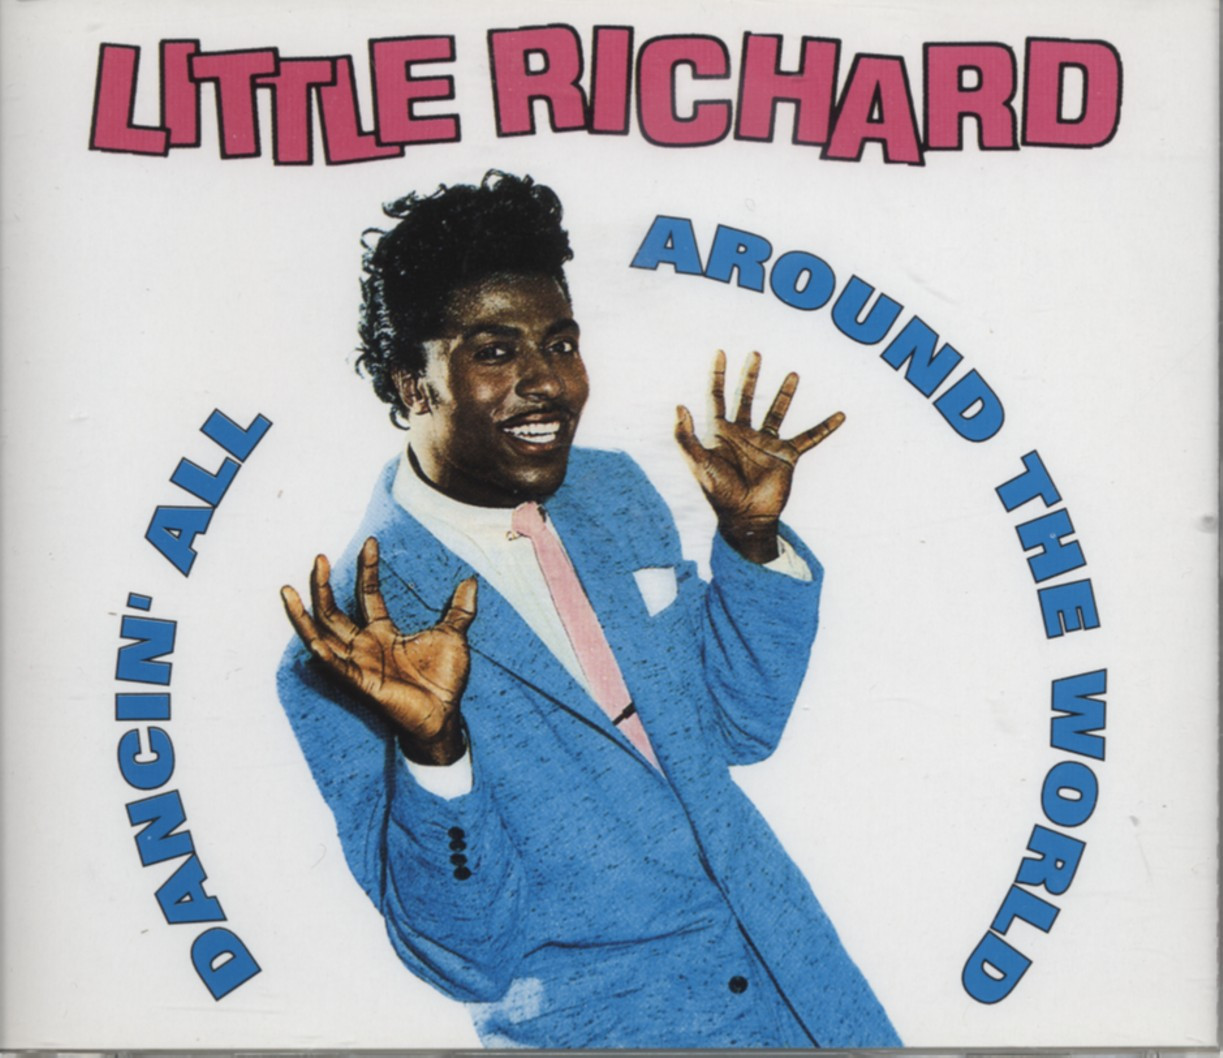 Little Richard - Dancin´ All Around The World - The Complete Vee-Jay Recordings (2-CD)